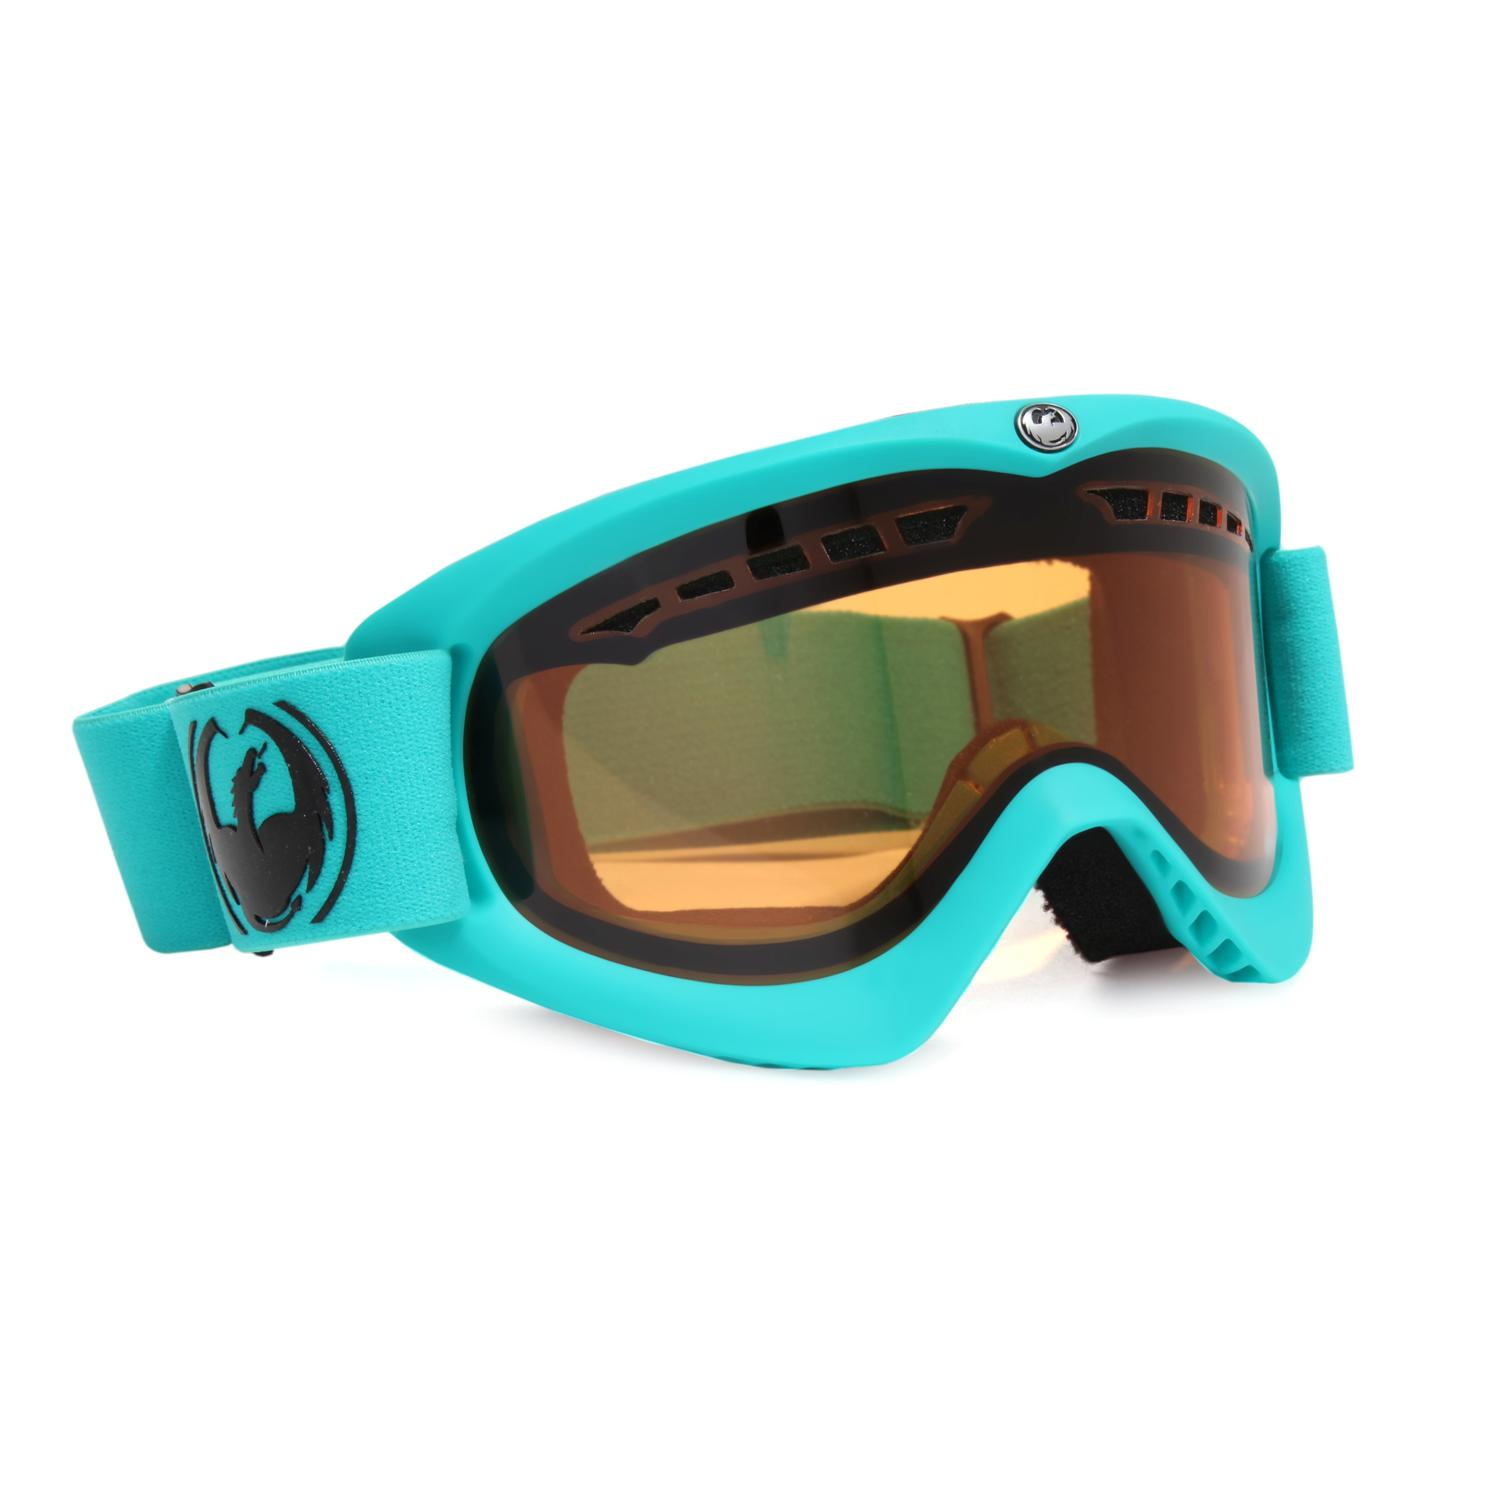 Dragon DX-L Goggles | evo outlet